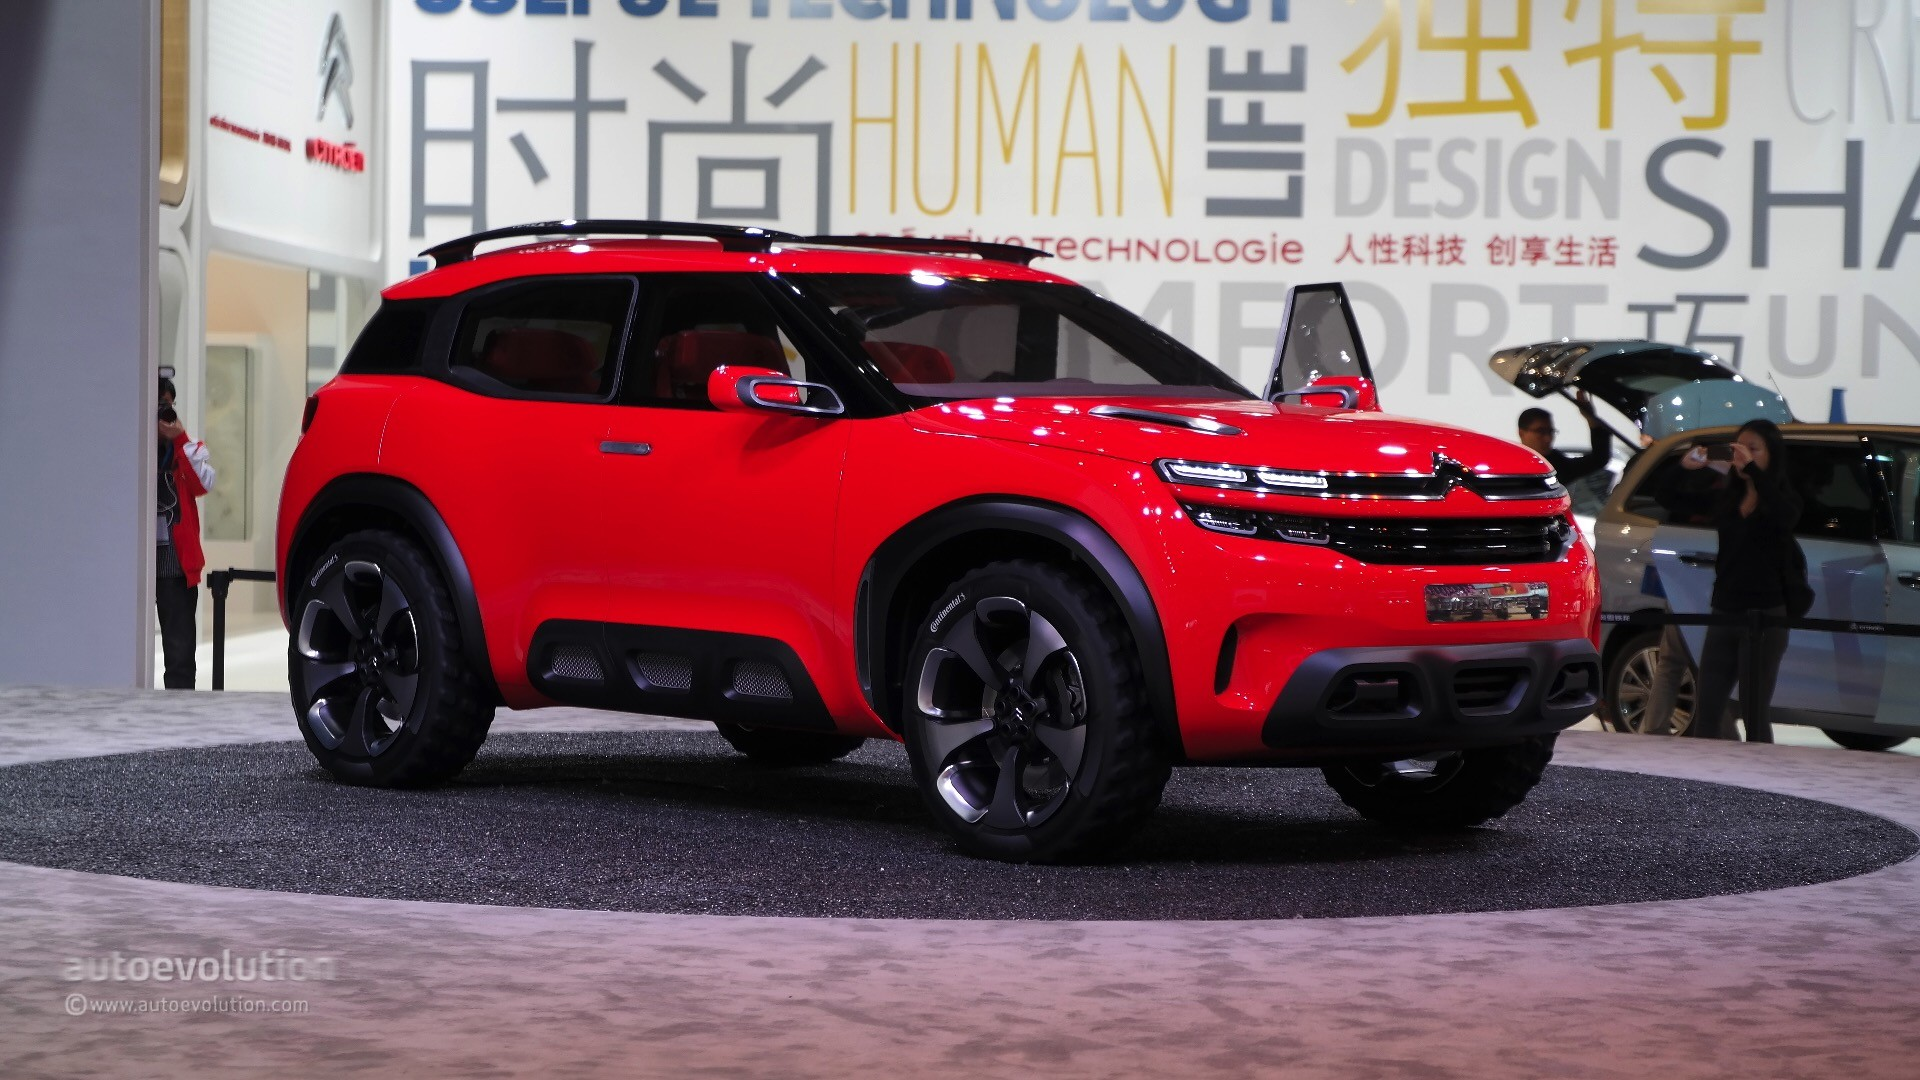 citroen aircross concept makes a first appearance at the. Black Bedroom Furniture Sets. Home Design Ideas